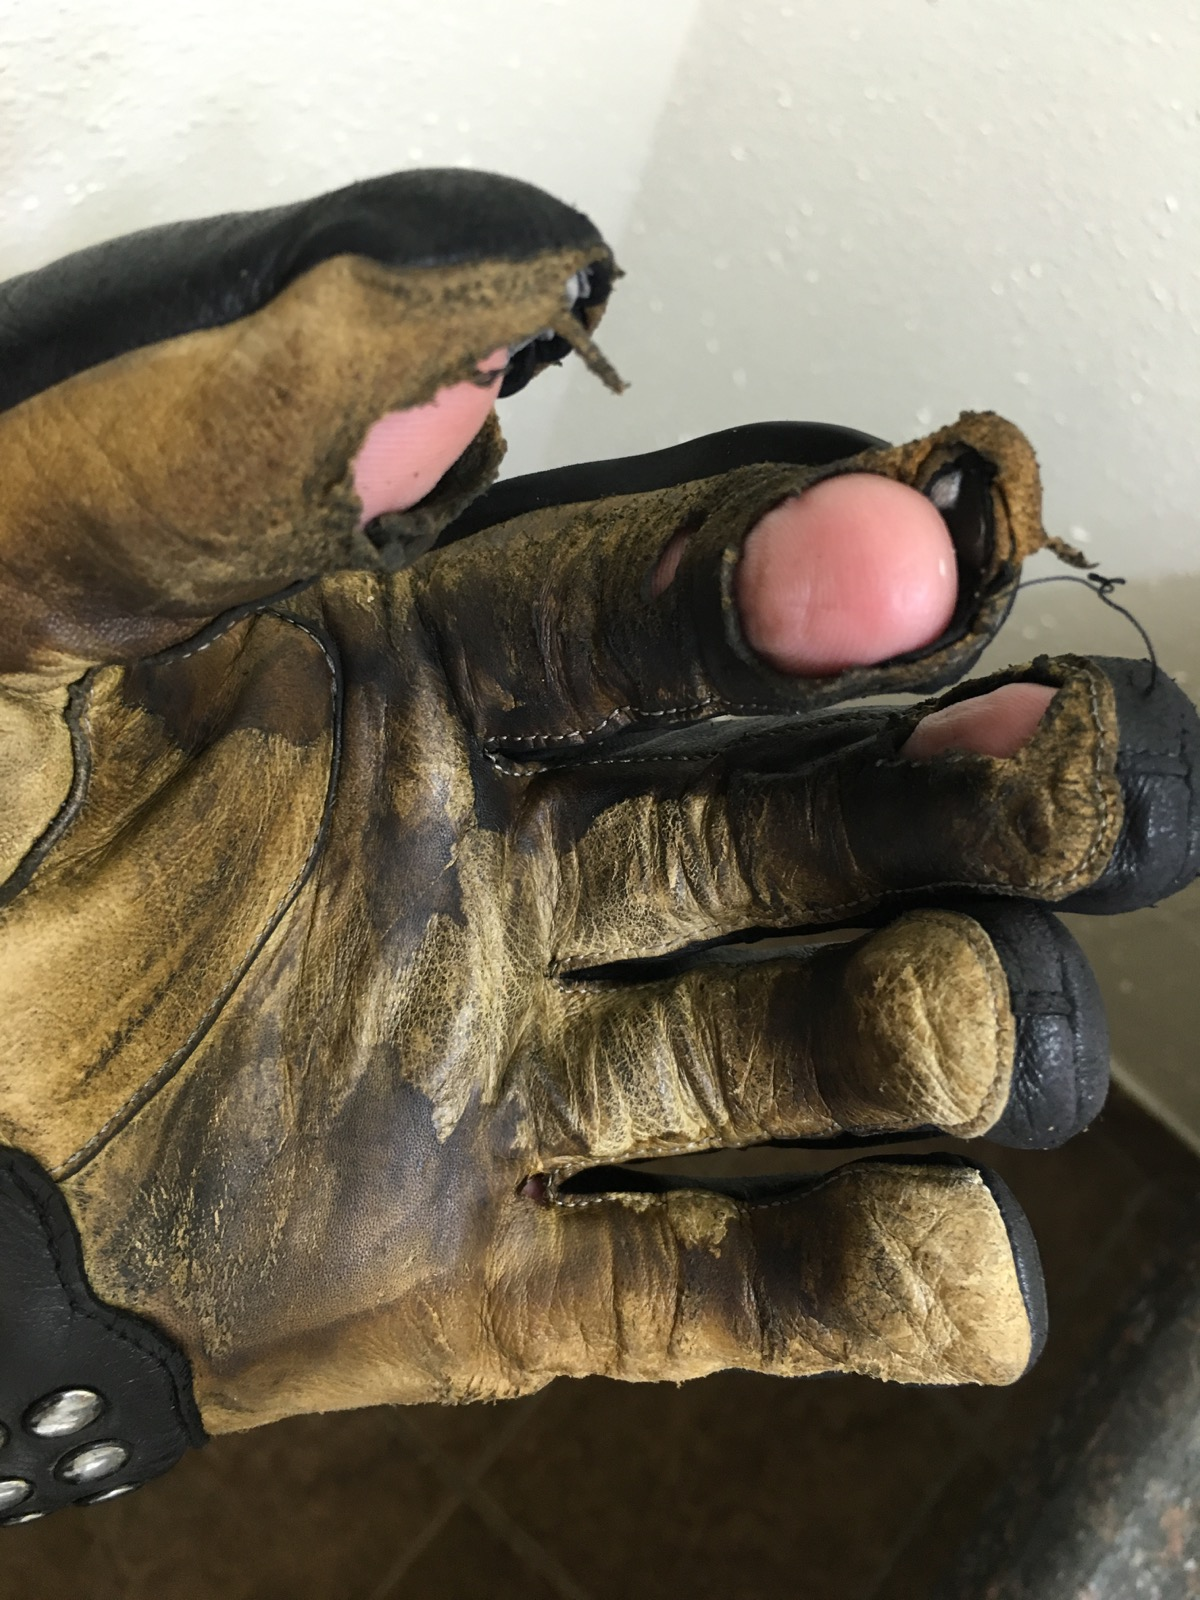 My worn out Held gloves